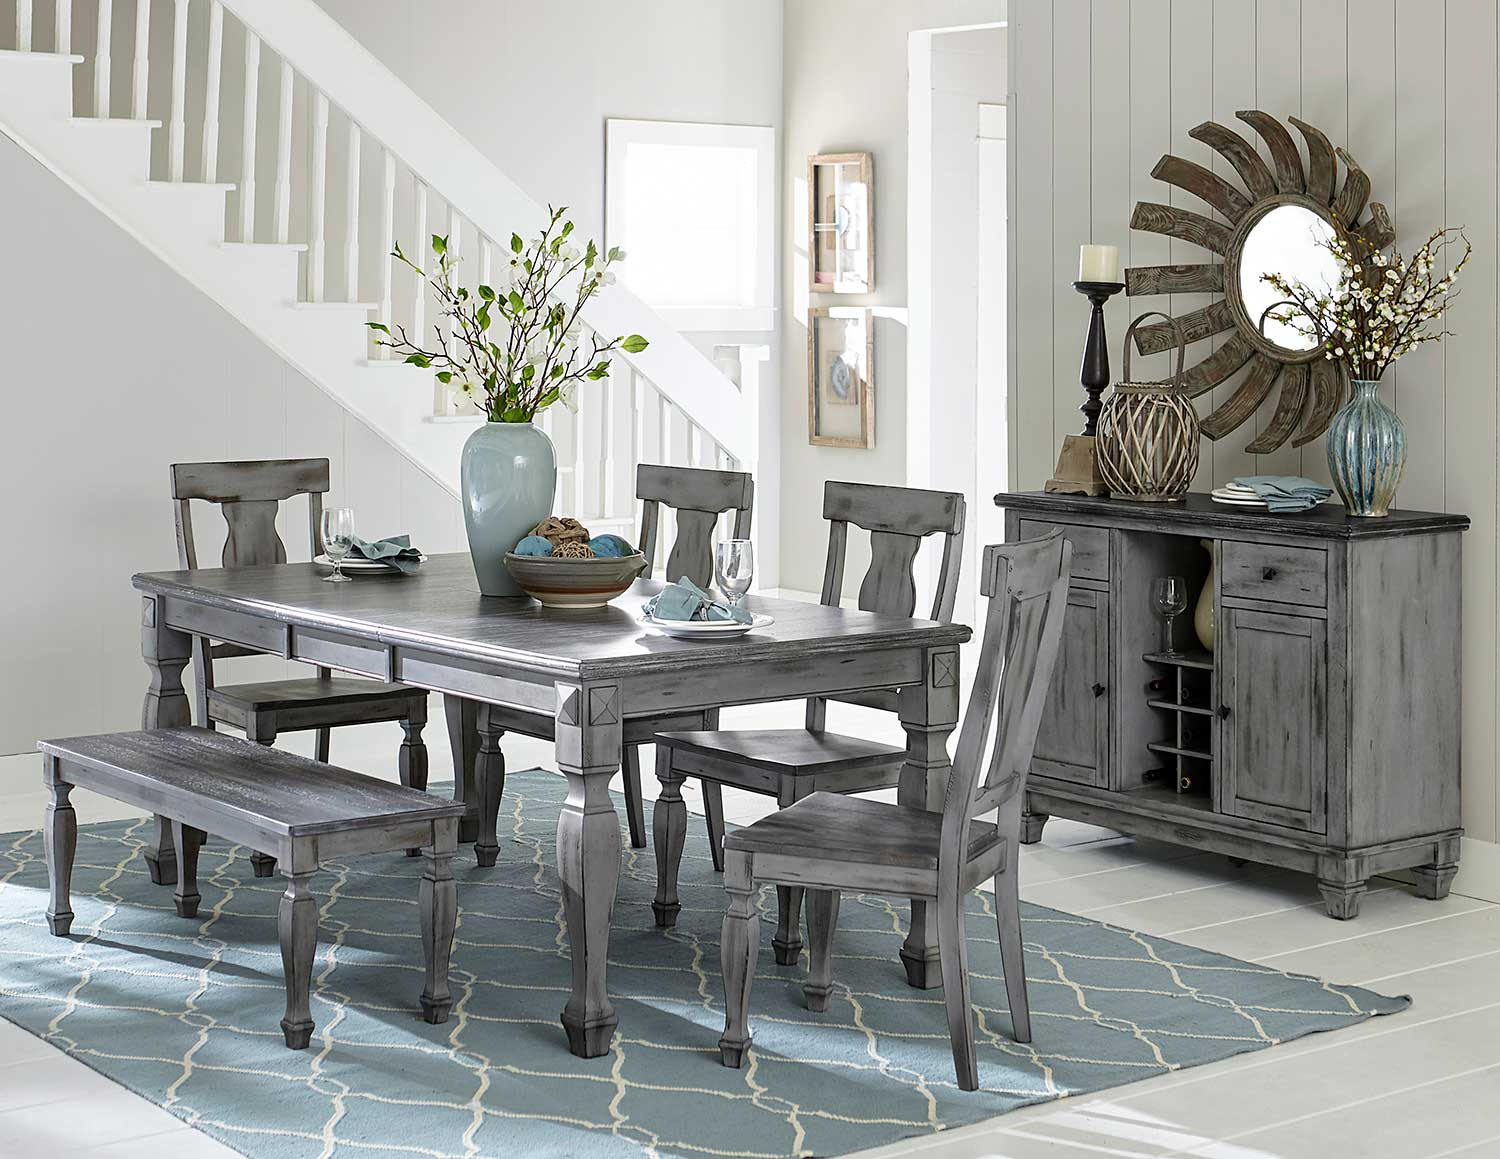 Homelegance Fulbright Rectangular Dining Set - Weathered Gray Rub Through Finish